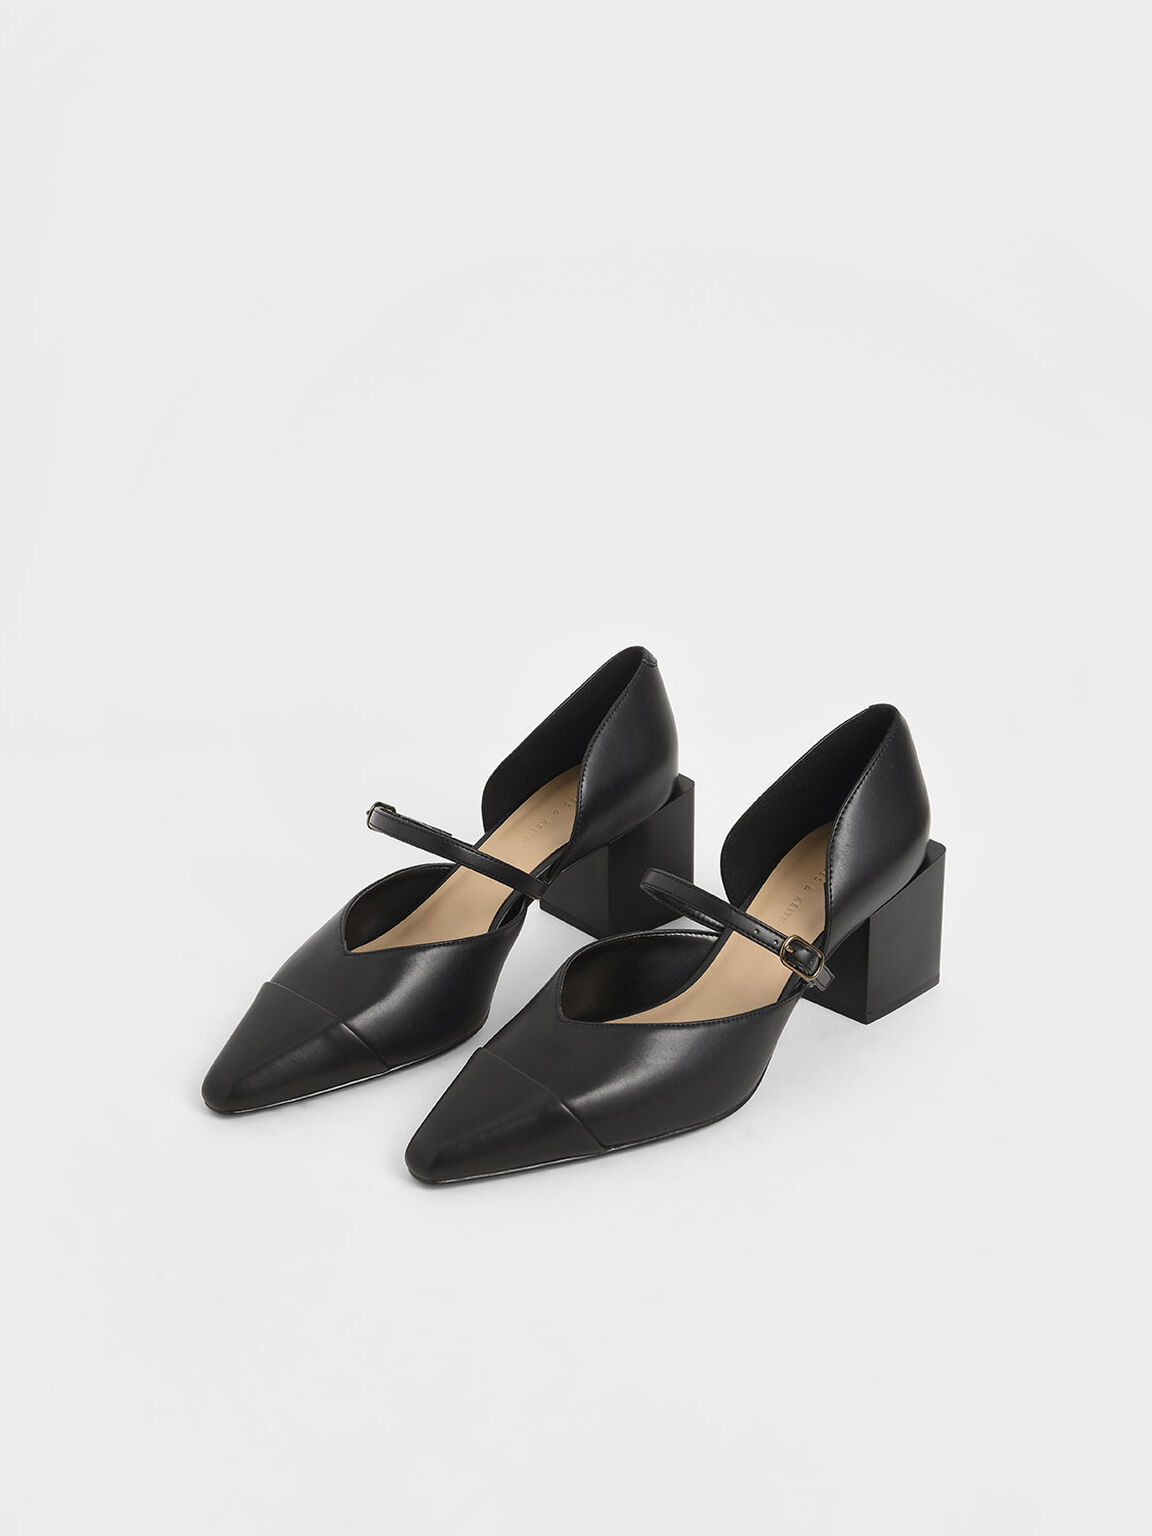 Mary Jane Block Heel Pumps, Black, hi-res